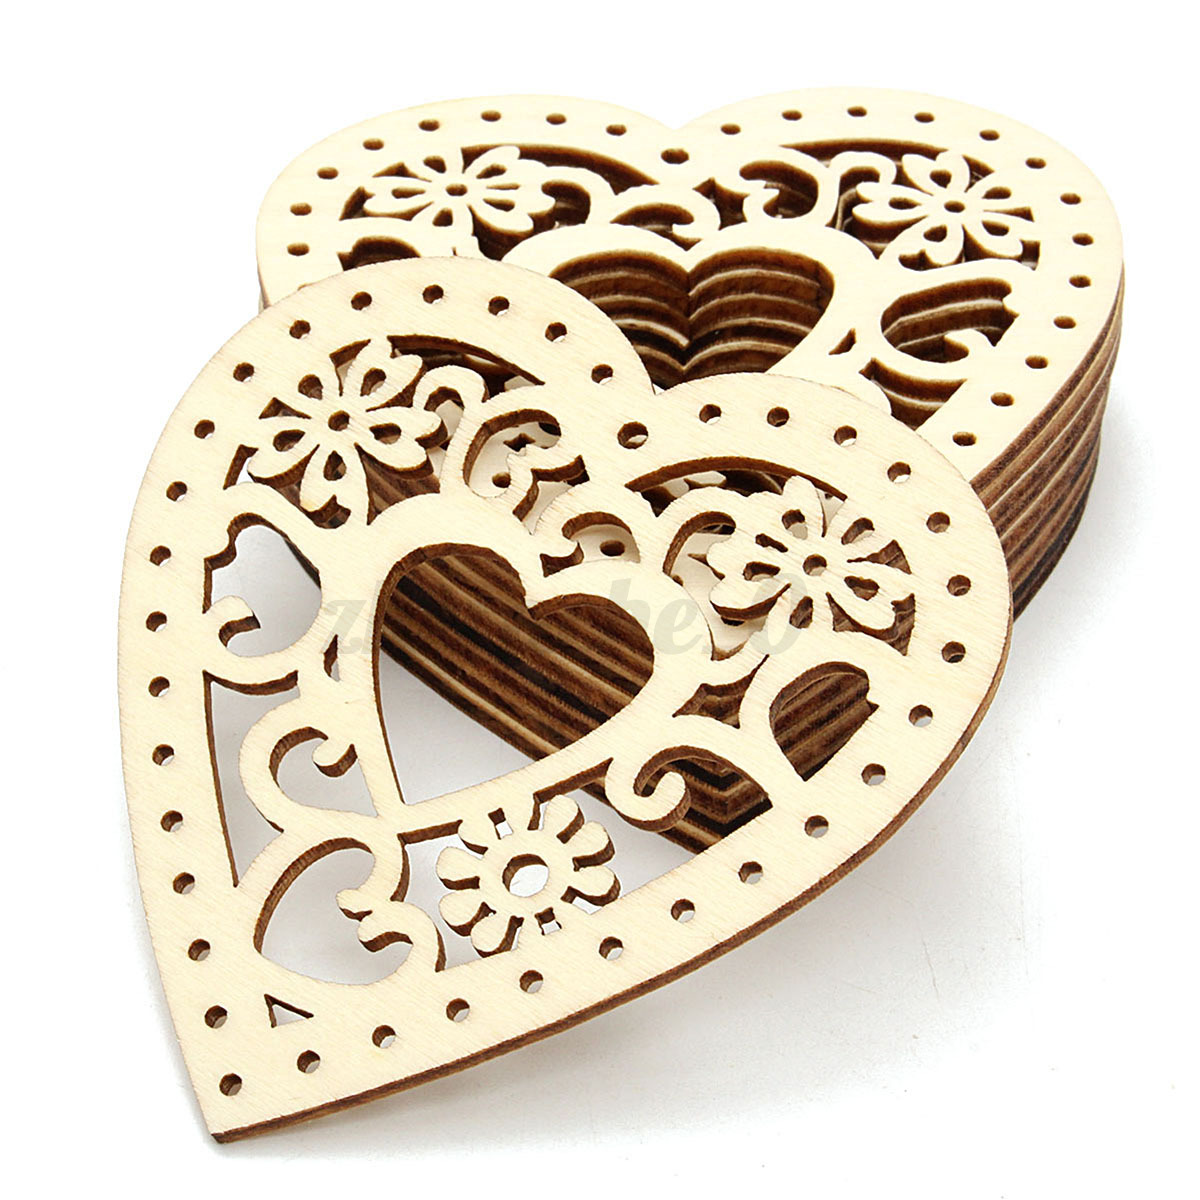 10pcs laser cut natural wooden heart shapes craft for Wooden hearts for crafts